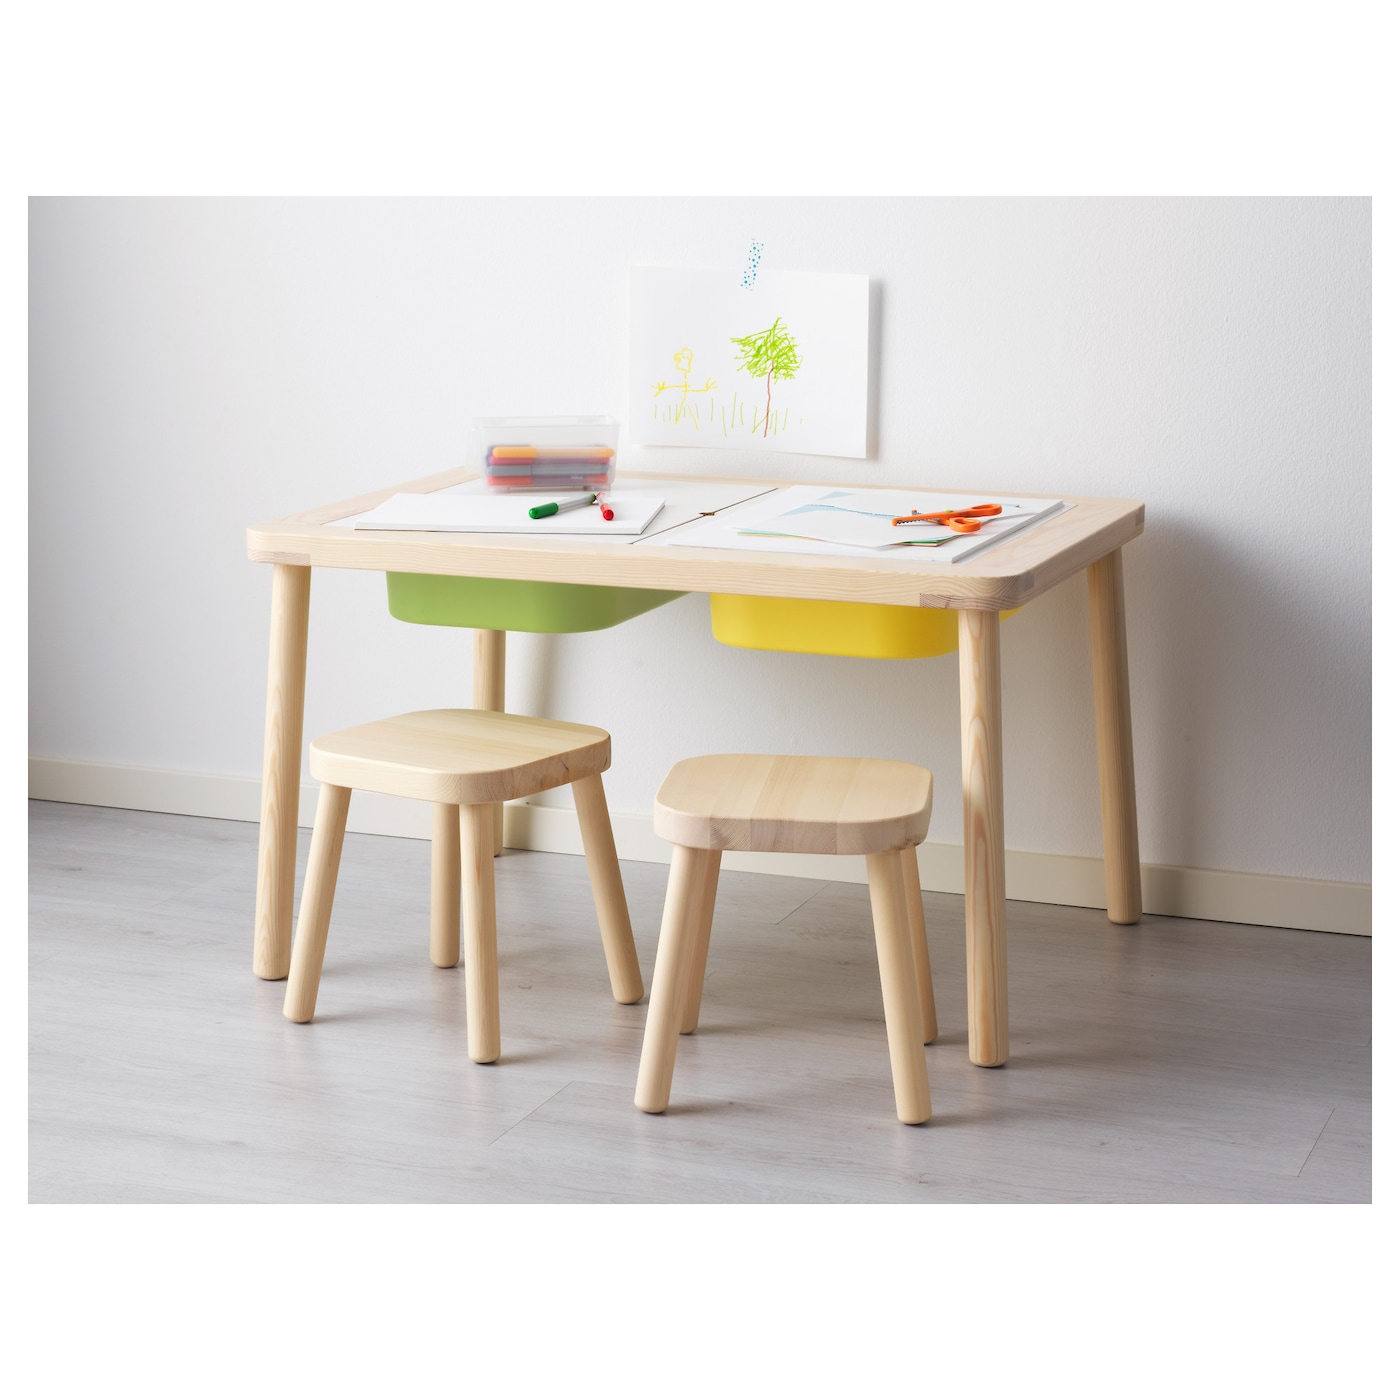 Flisat children 39 s table 83x58 cm ikea for Ikea drawing desk